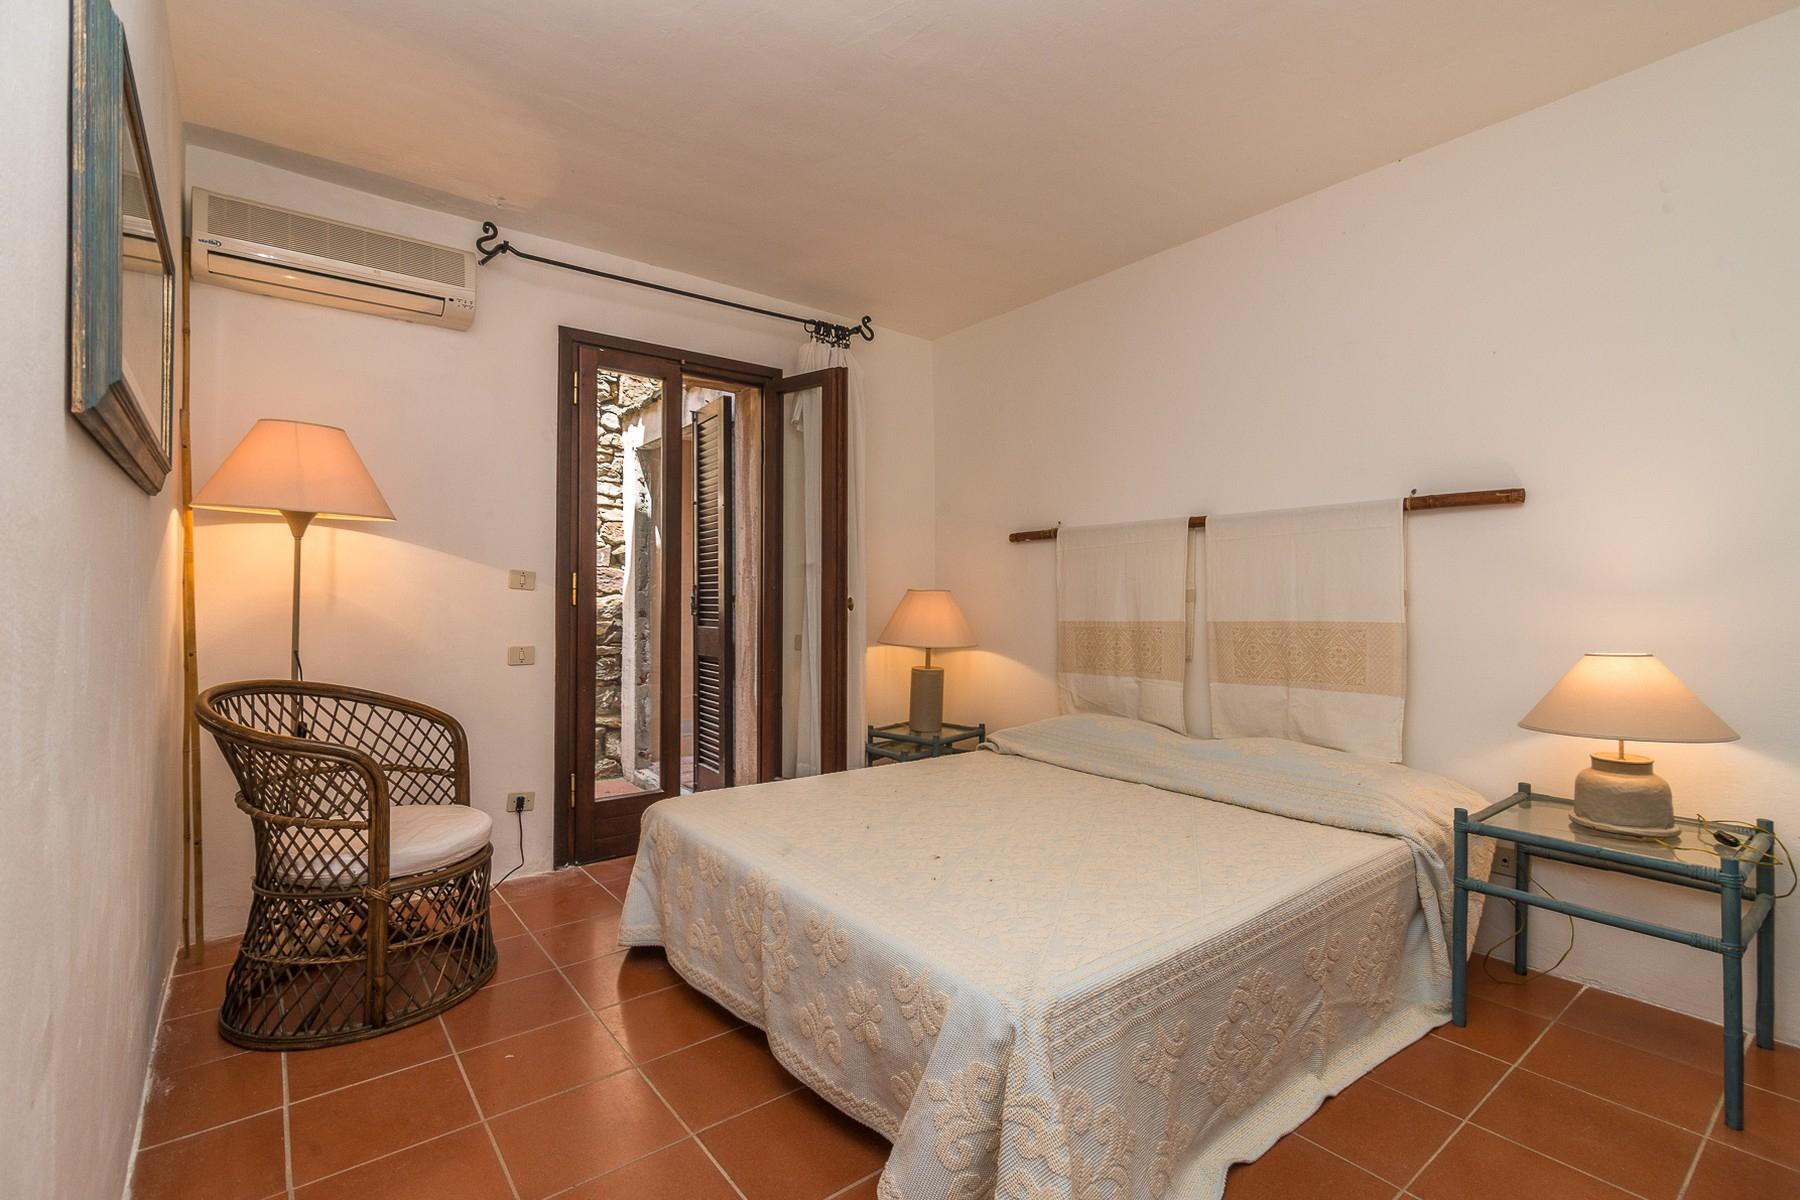 Porto Cervo Cala Granu Delightful Apartment a few steps from the beach - 11